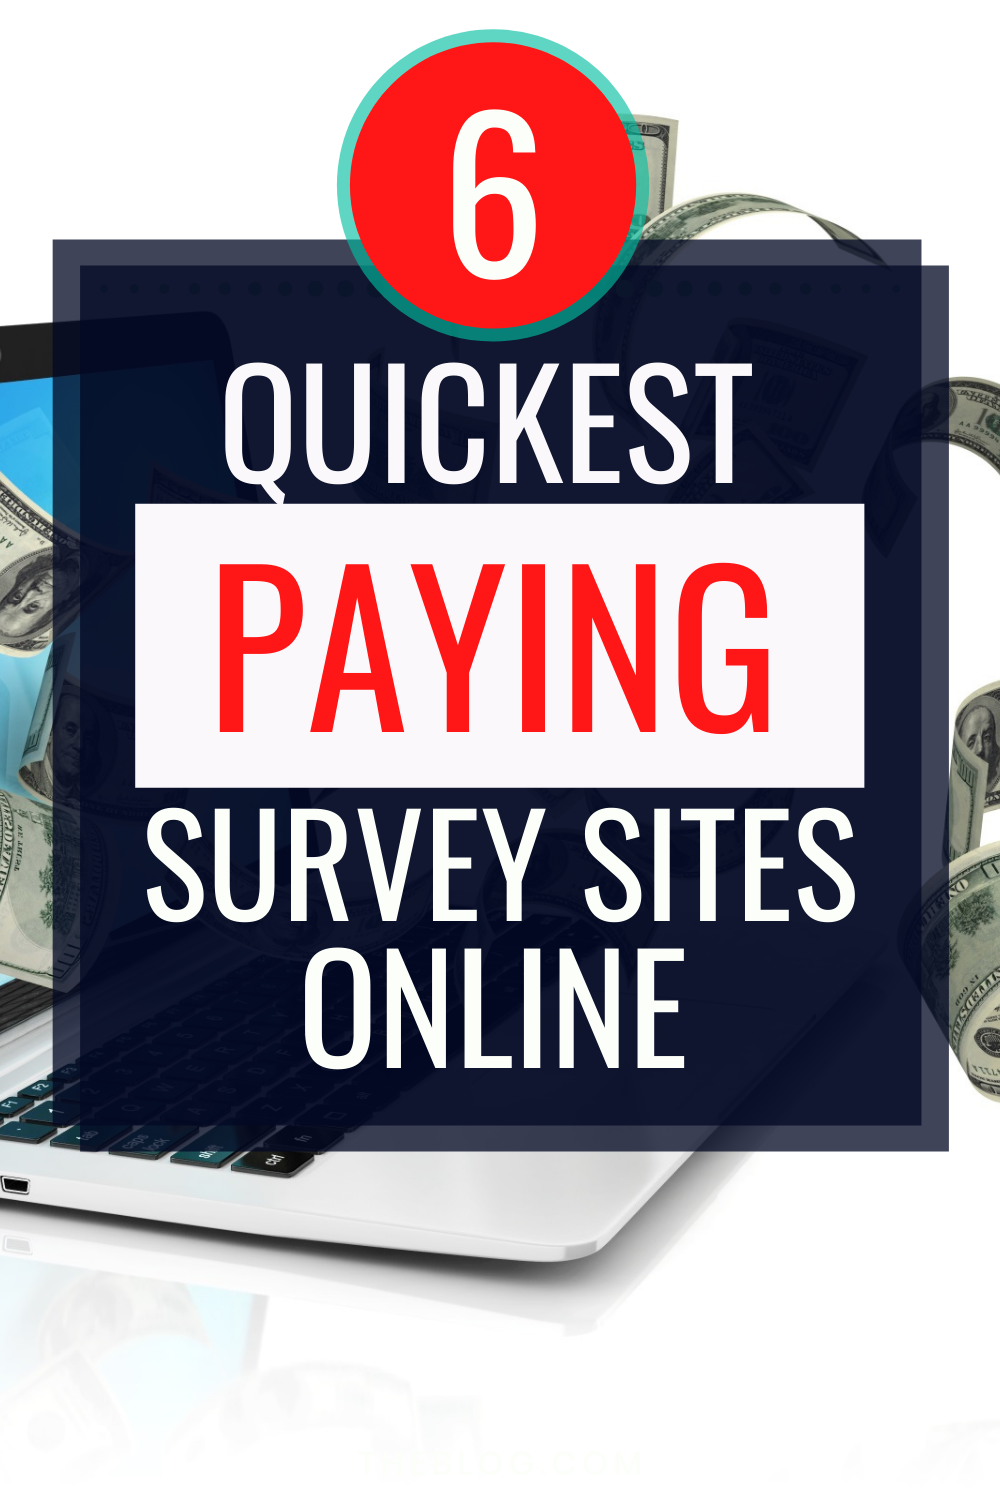 Quickest paying survey sites online